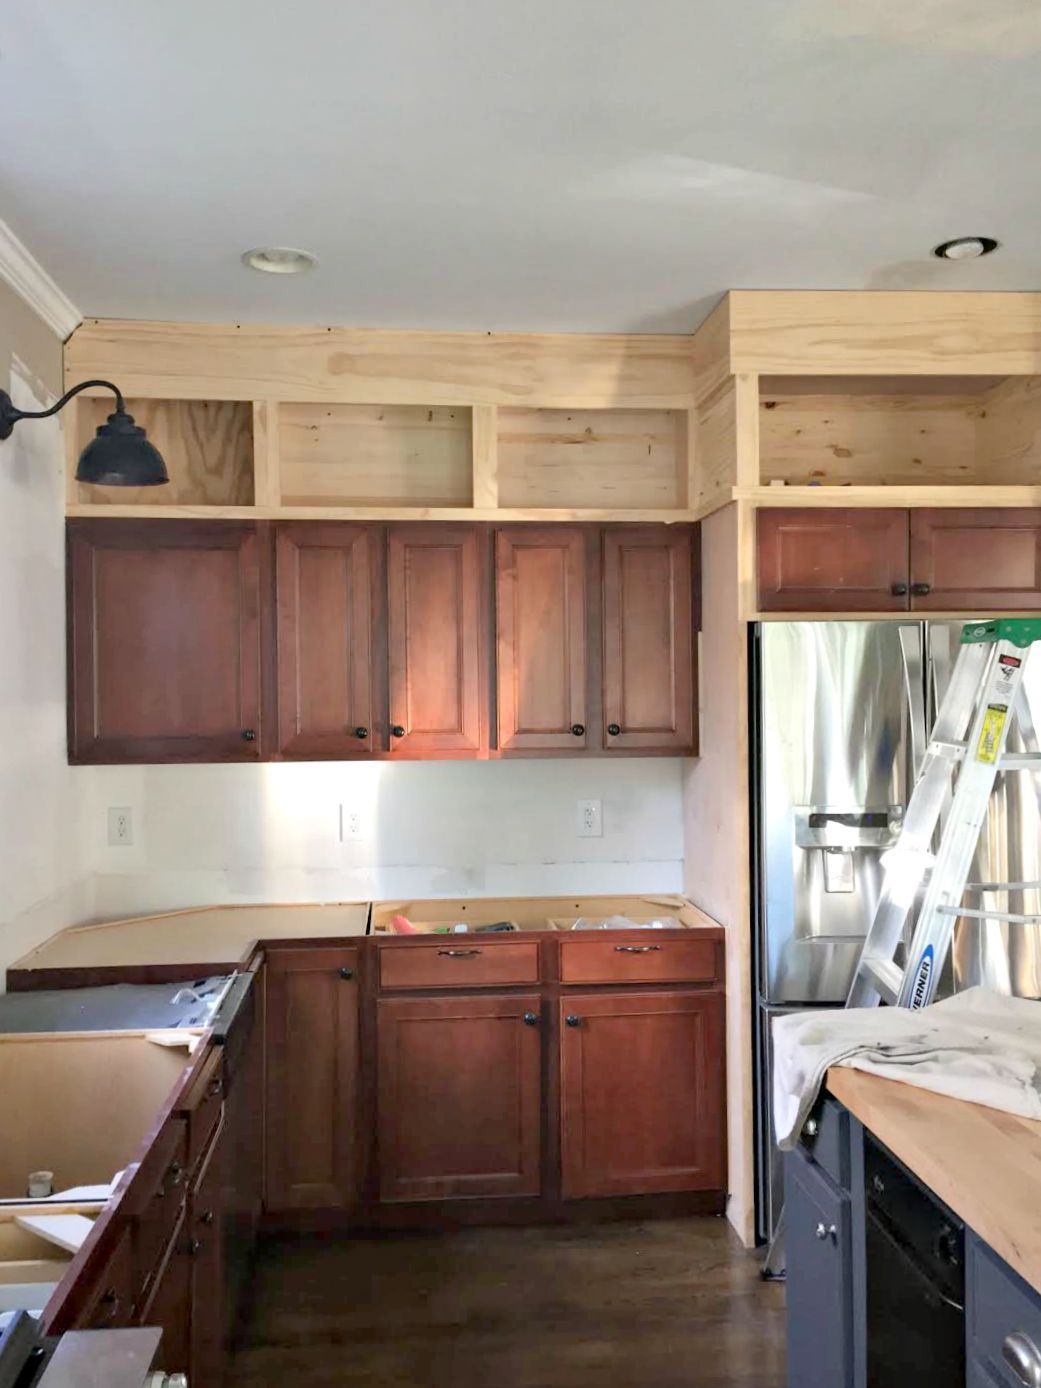 Bathroom Furniture Remodeled Kitchen Cabinets building cabinets up to the ceiling kitchen ceiling